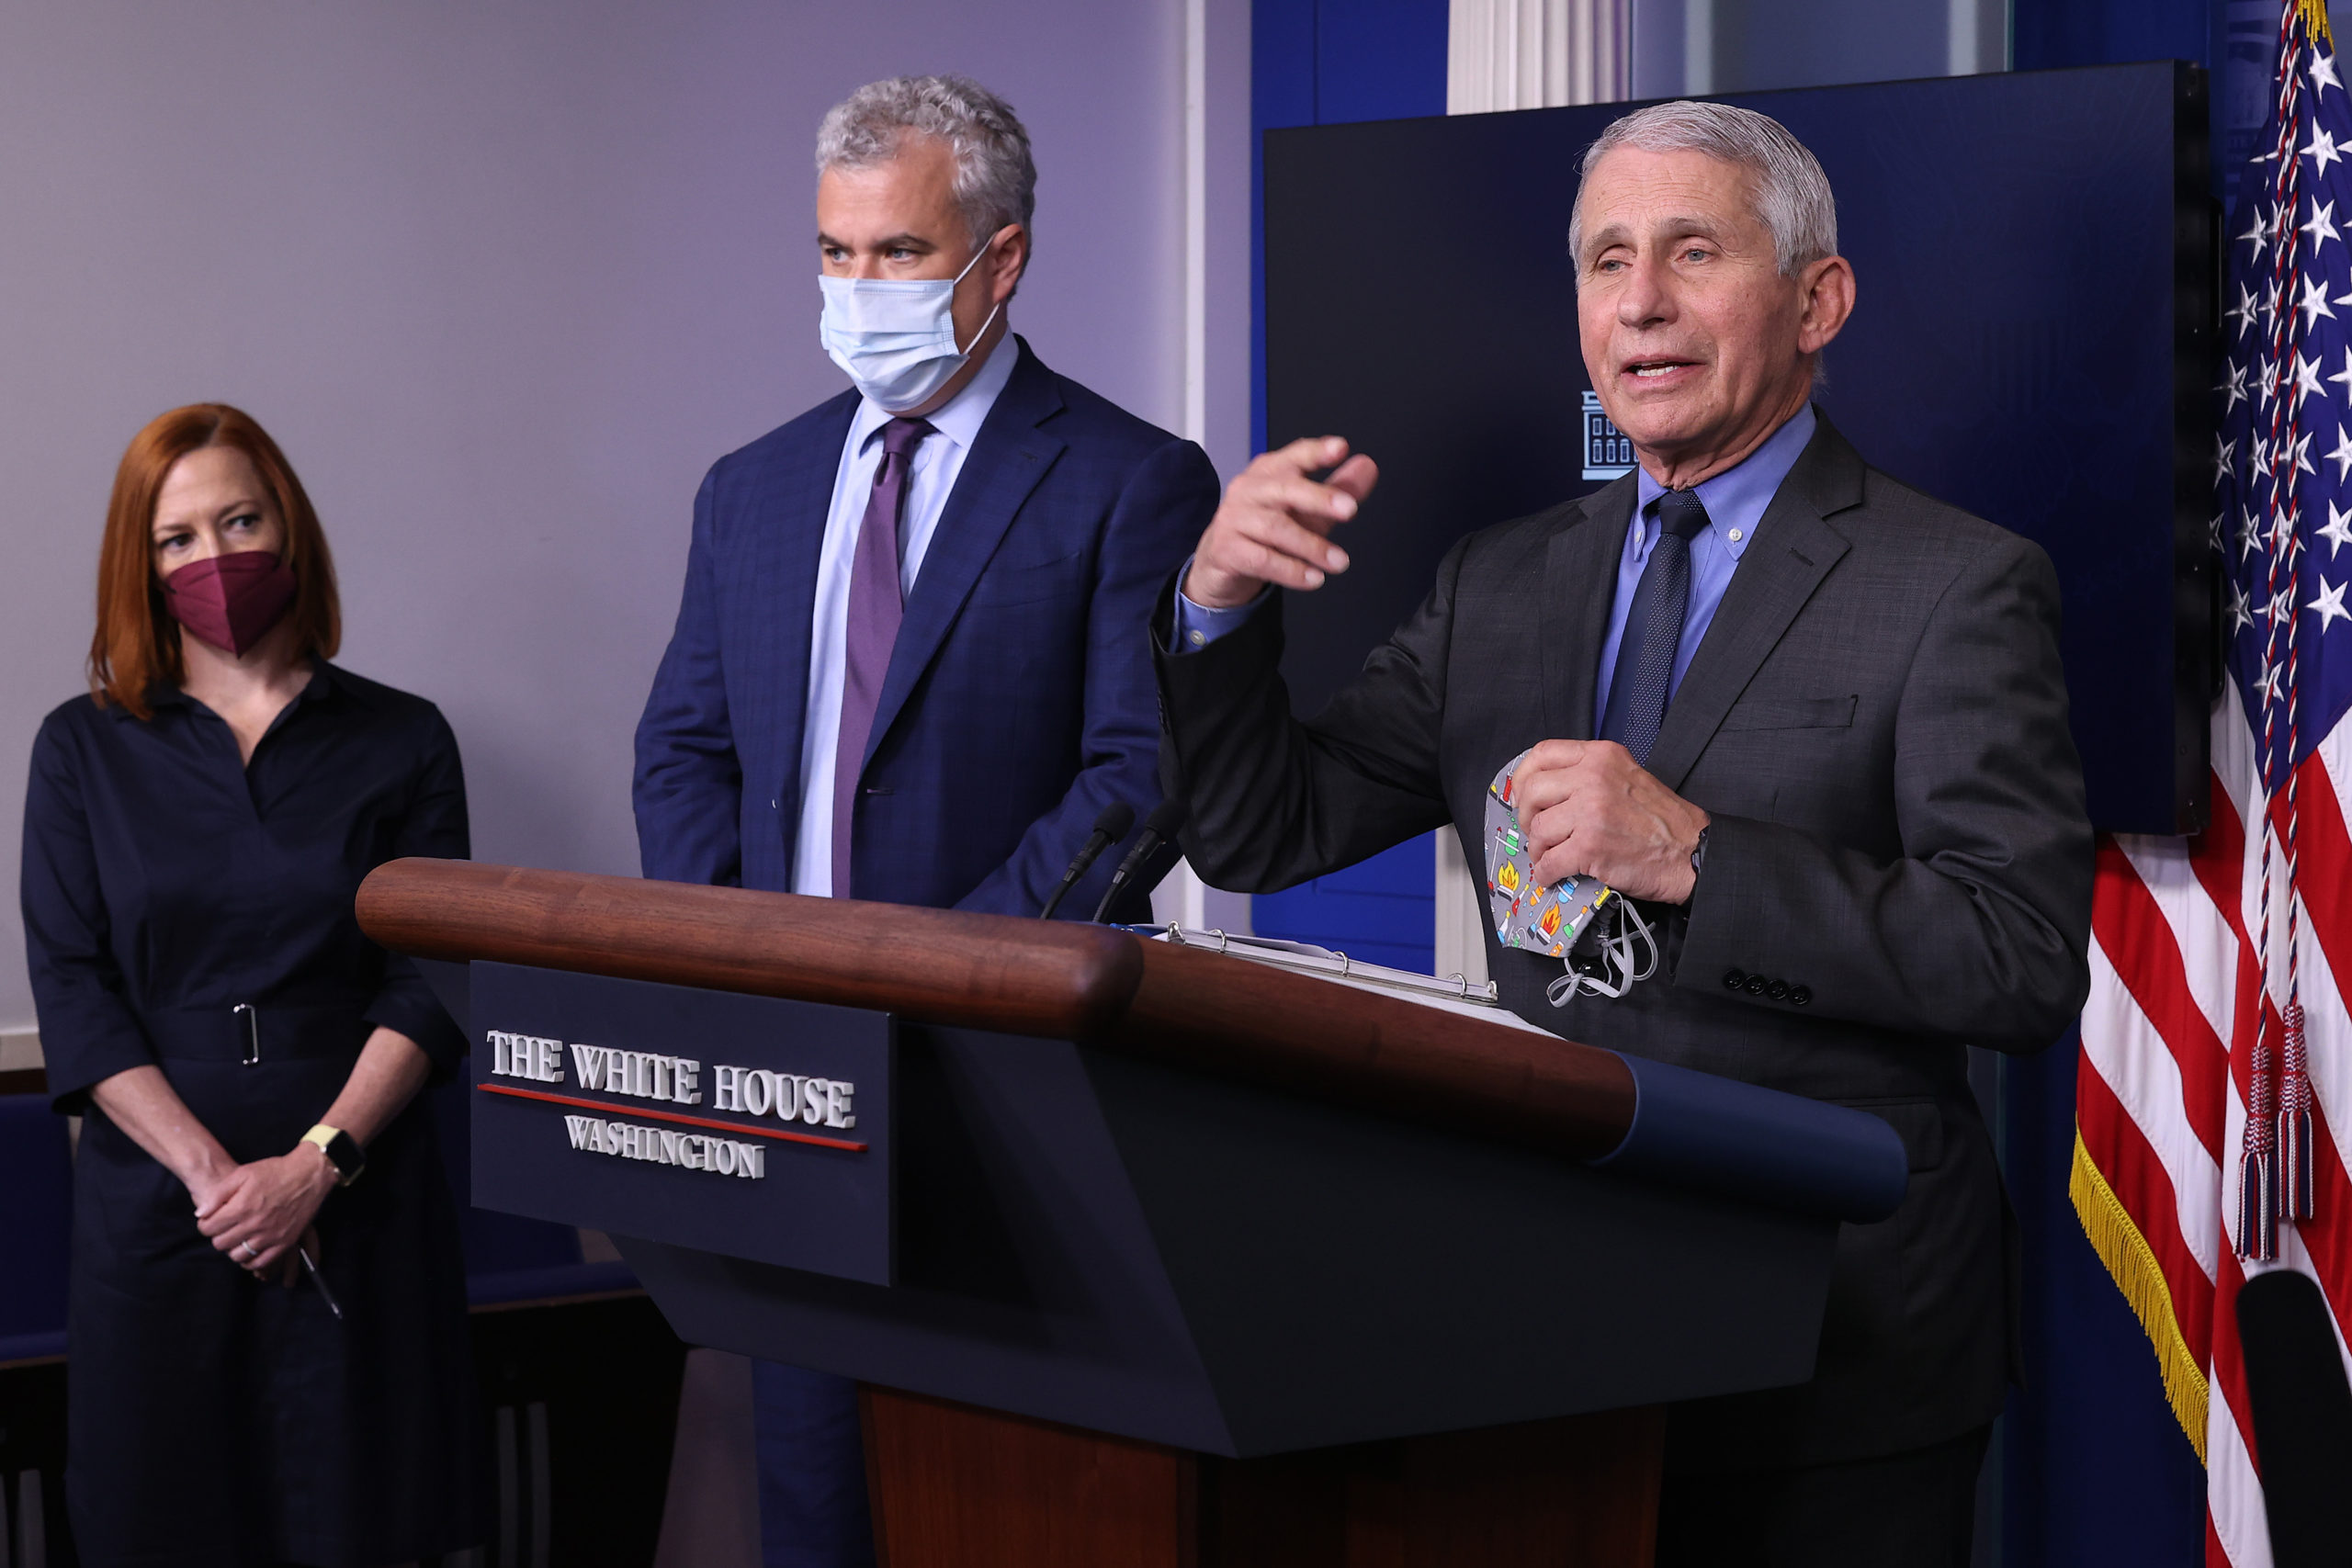 Dr. Anthony Fauci briefs reporters about the U.S. vaccination effort at the White House on April 13. (Chip Somodevilla/Getty Images)